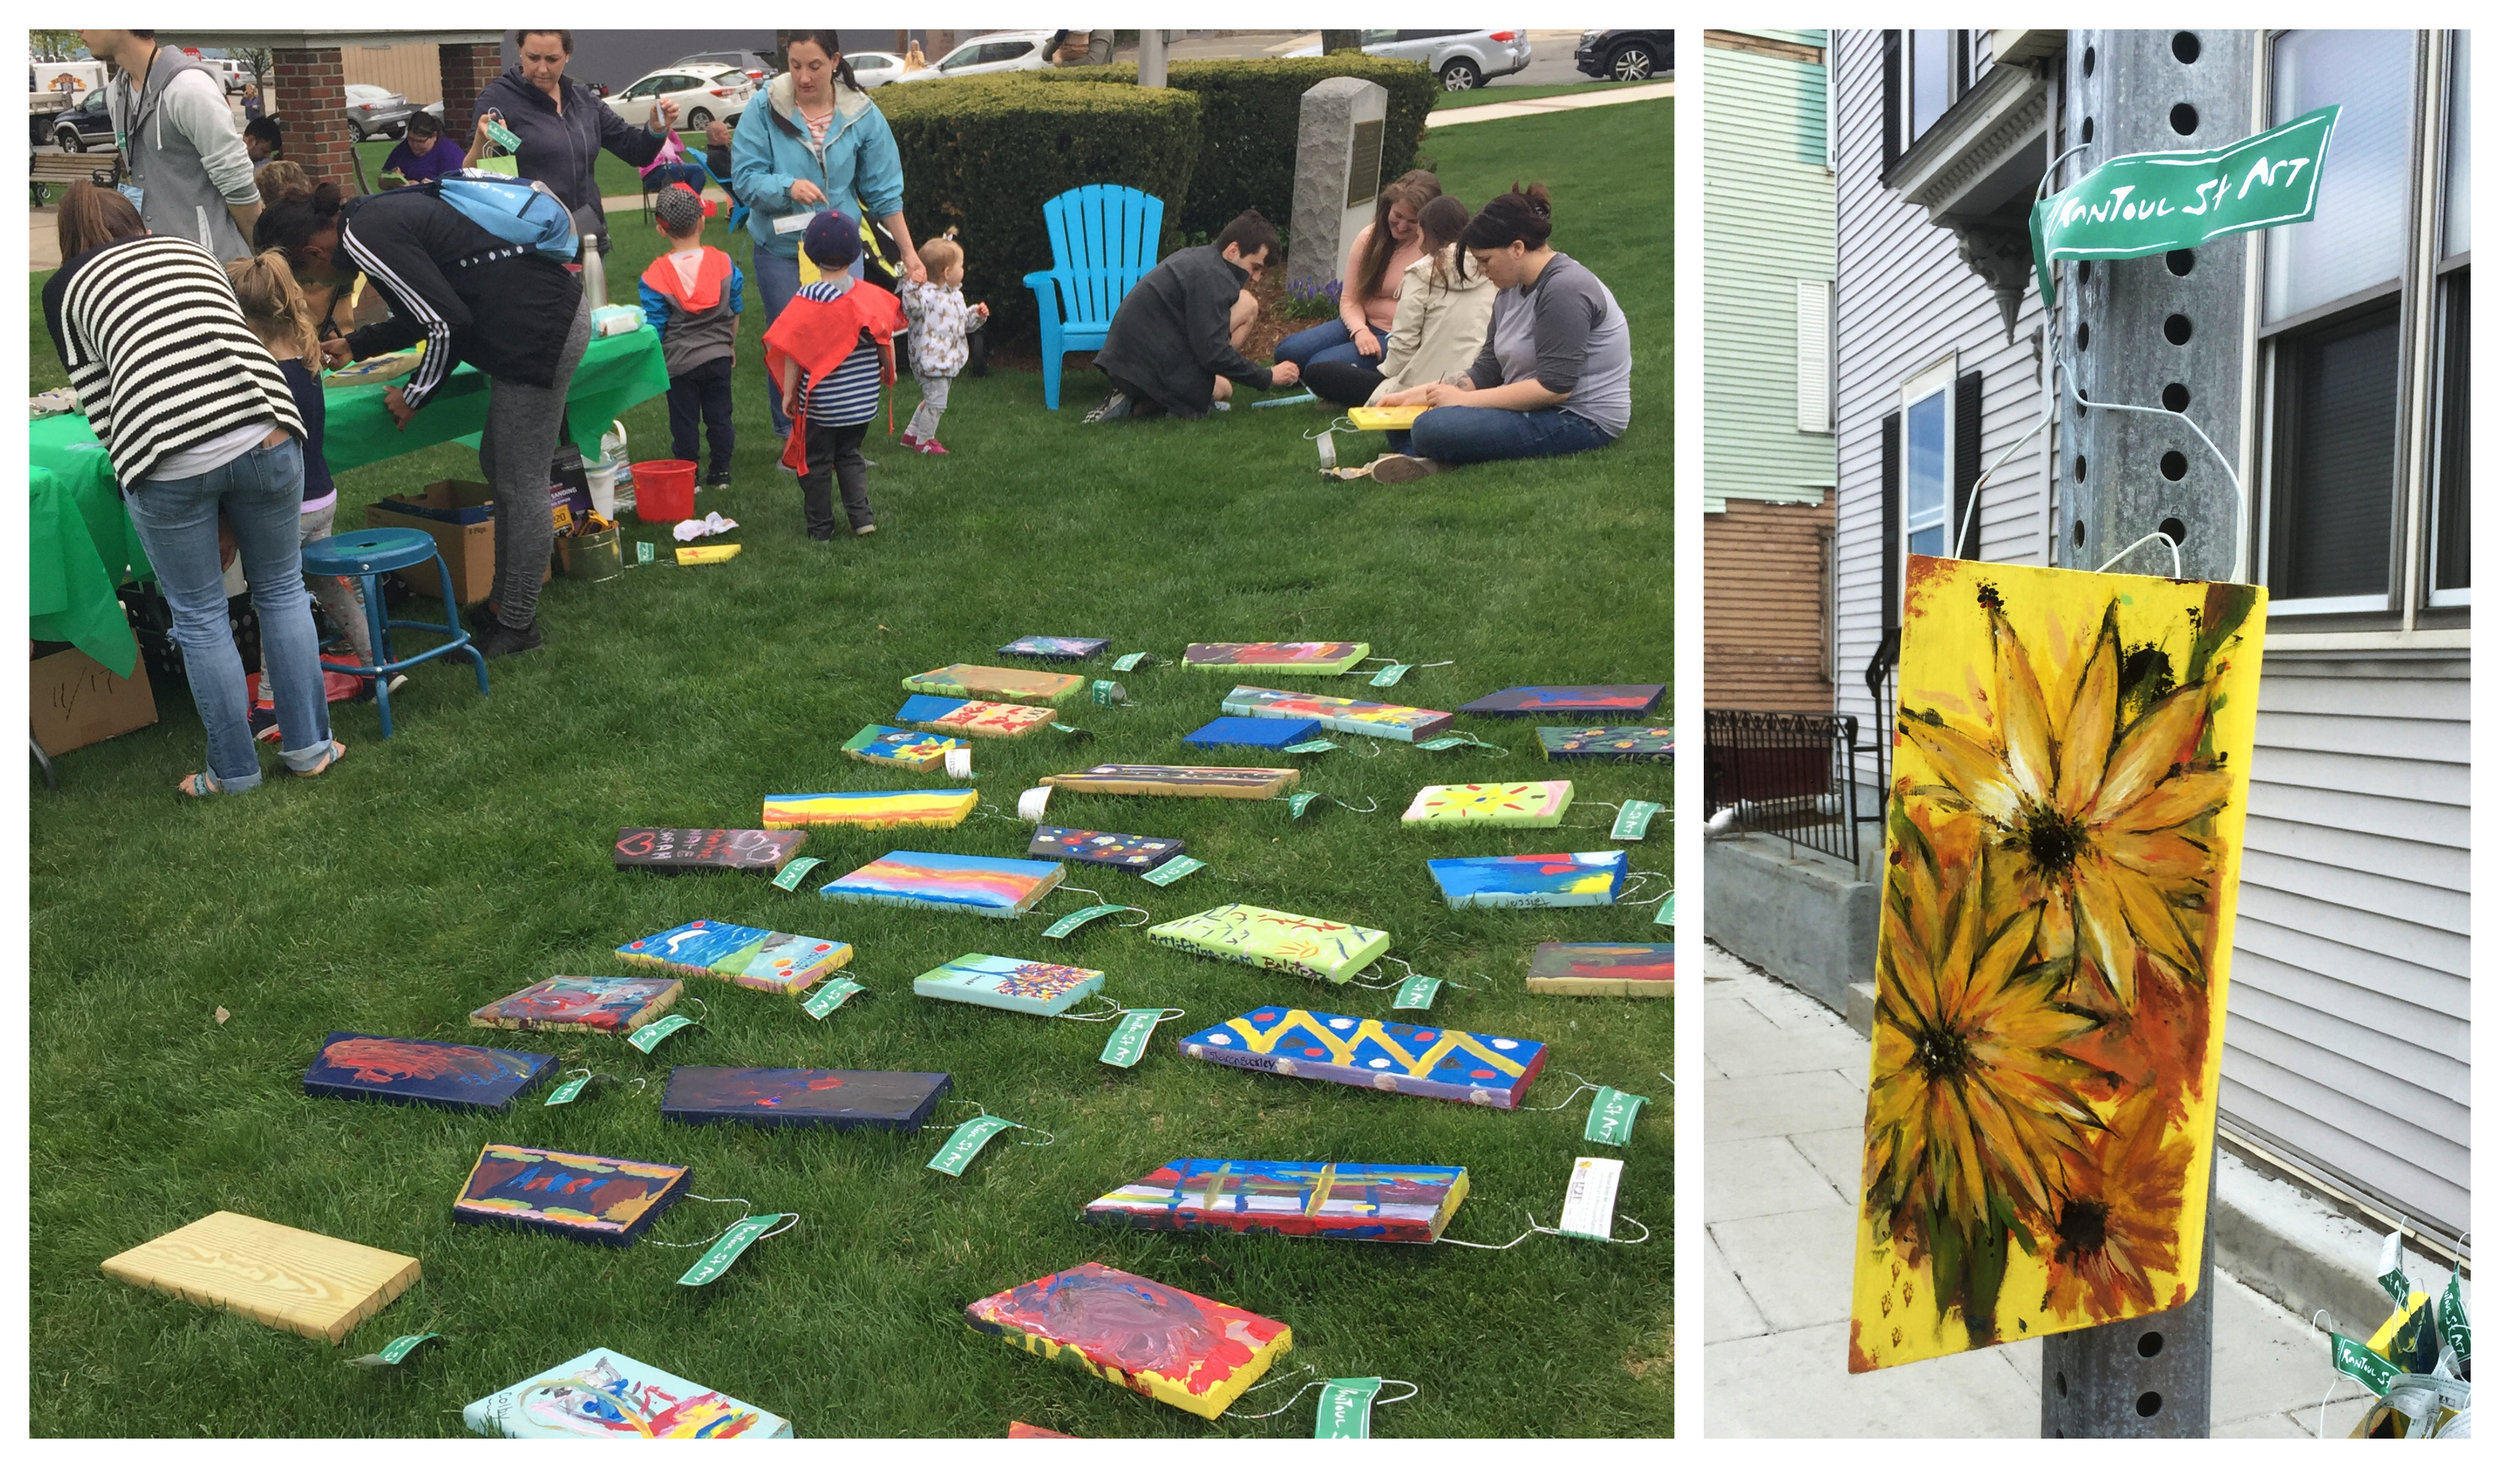 """Rantoul Street Art"" is a participatory community art project that engaged the local community at the Rantoul St Celebration that happened last Sunday, May 6th."